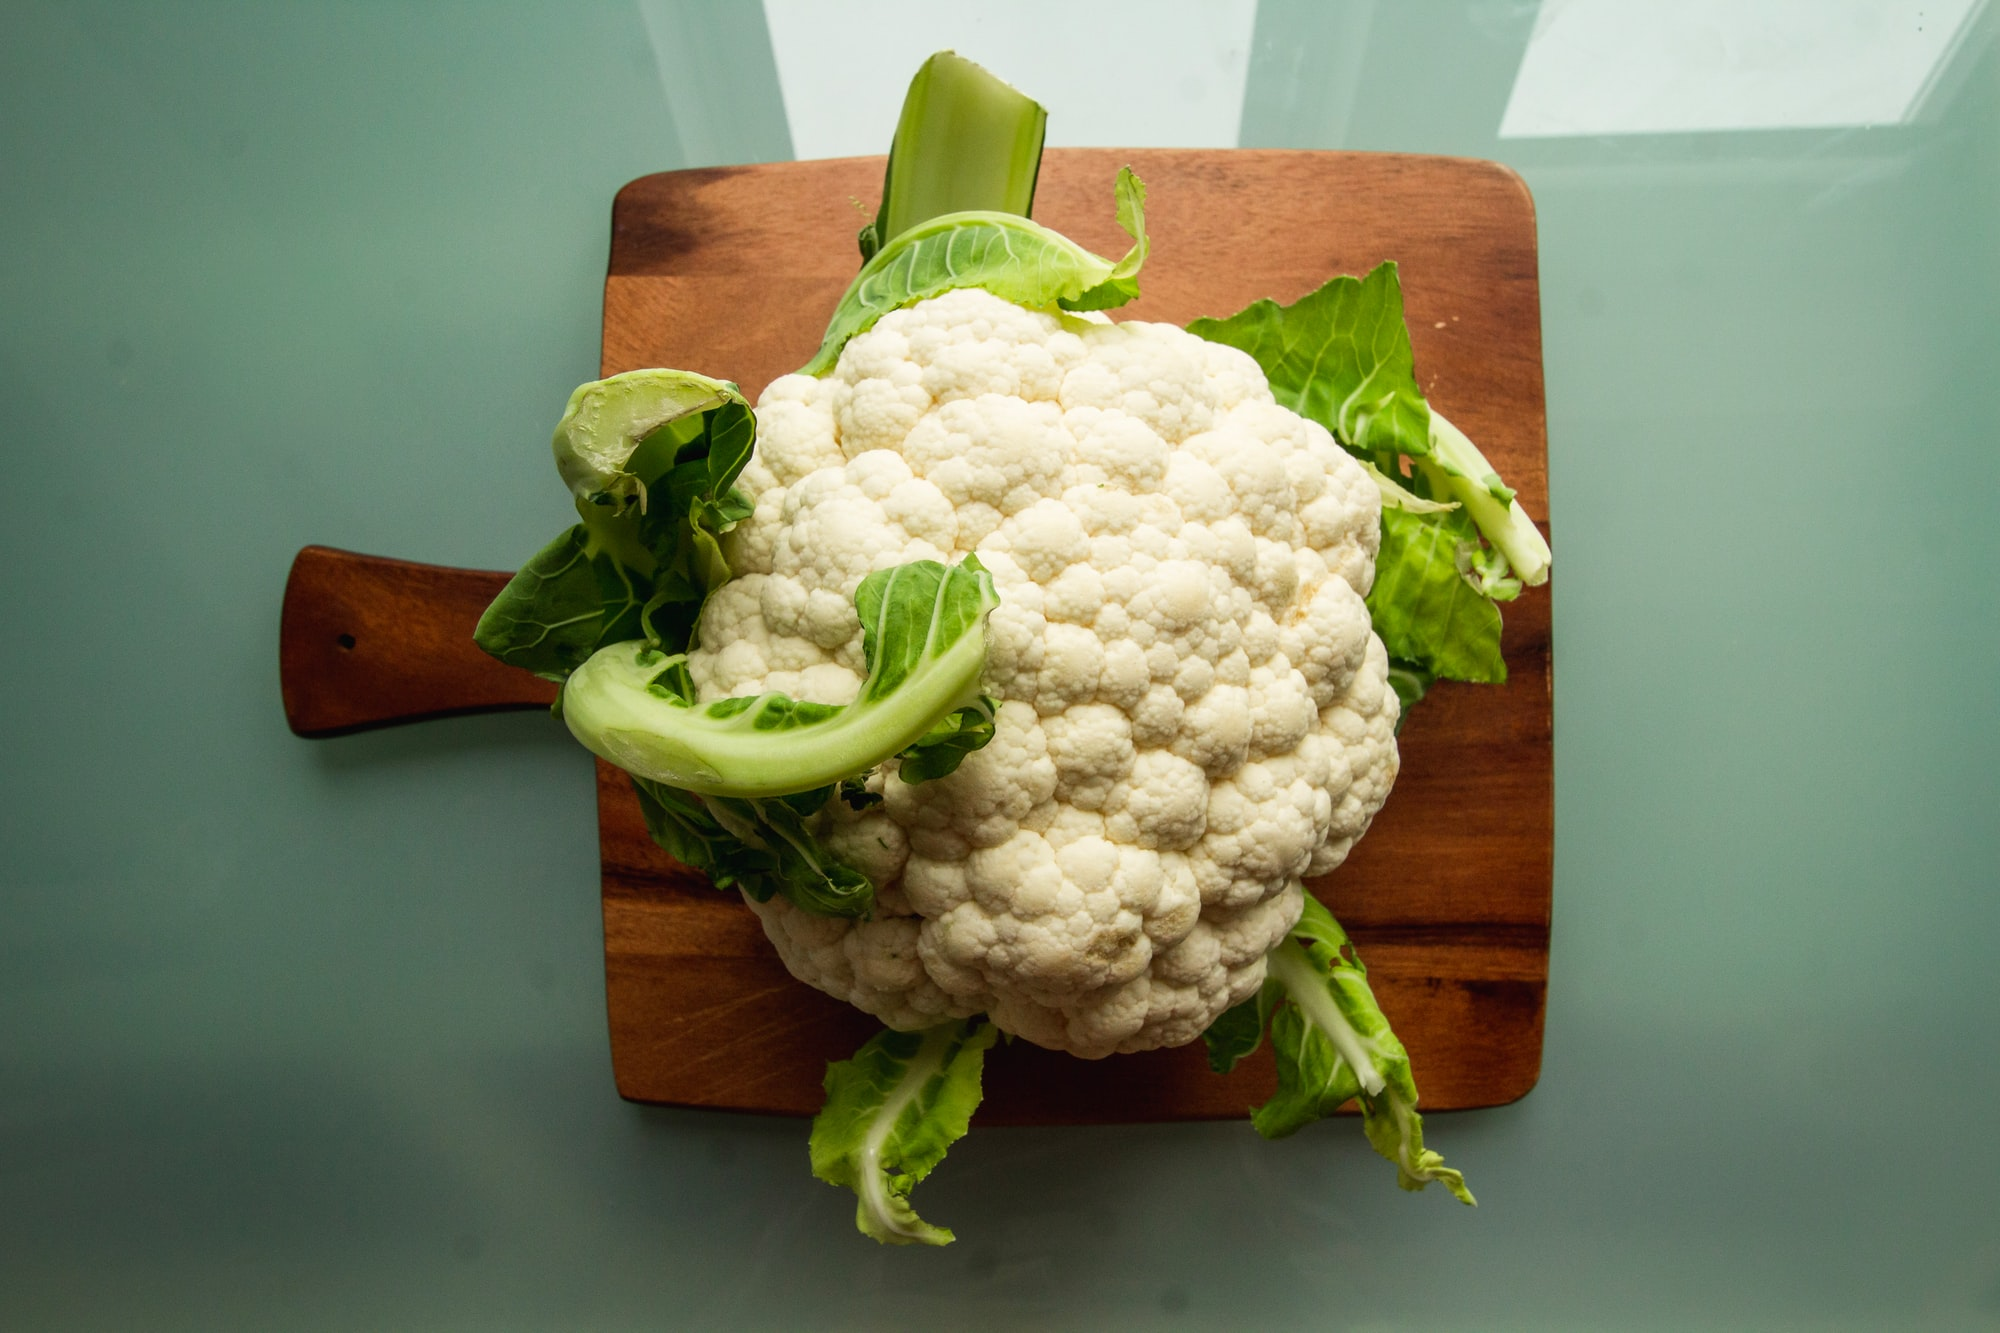 Cauliflower and celeriac are good low carb rice alternatives by Louis Hansel for Unsplash.